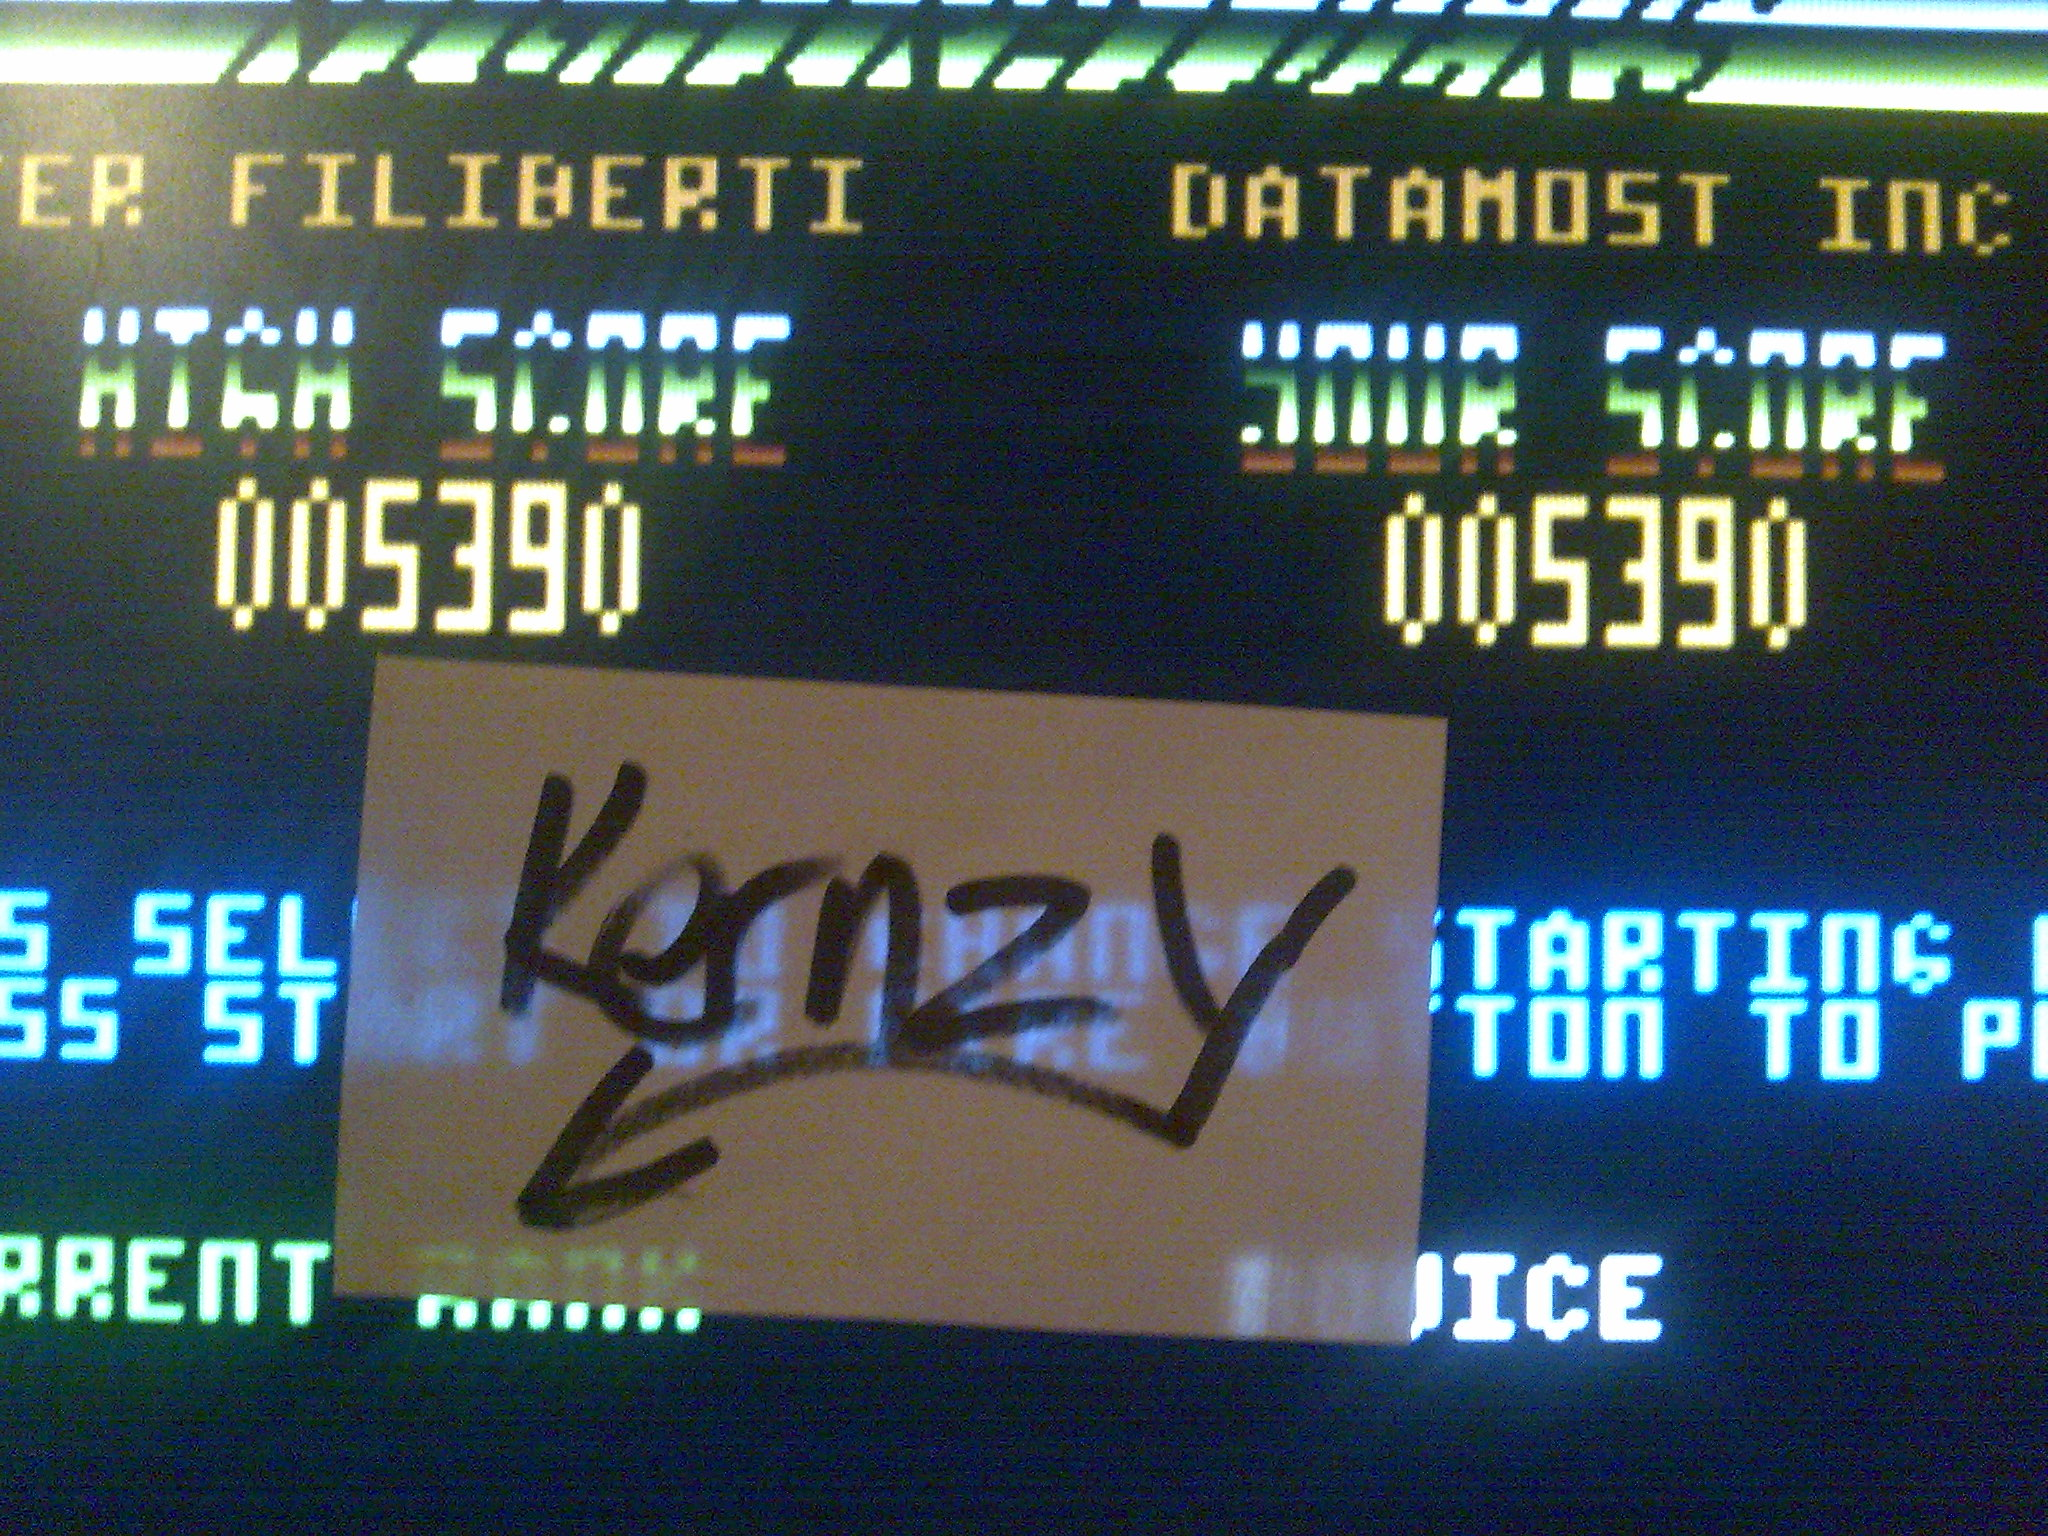 kernzy: Nightraiders (Atari 400/800/XL/XE Emulated) 5,390 points on 2014-11-12 06:21:58